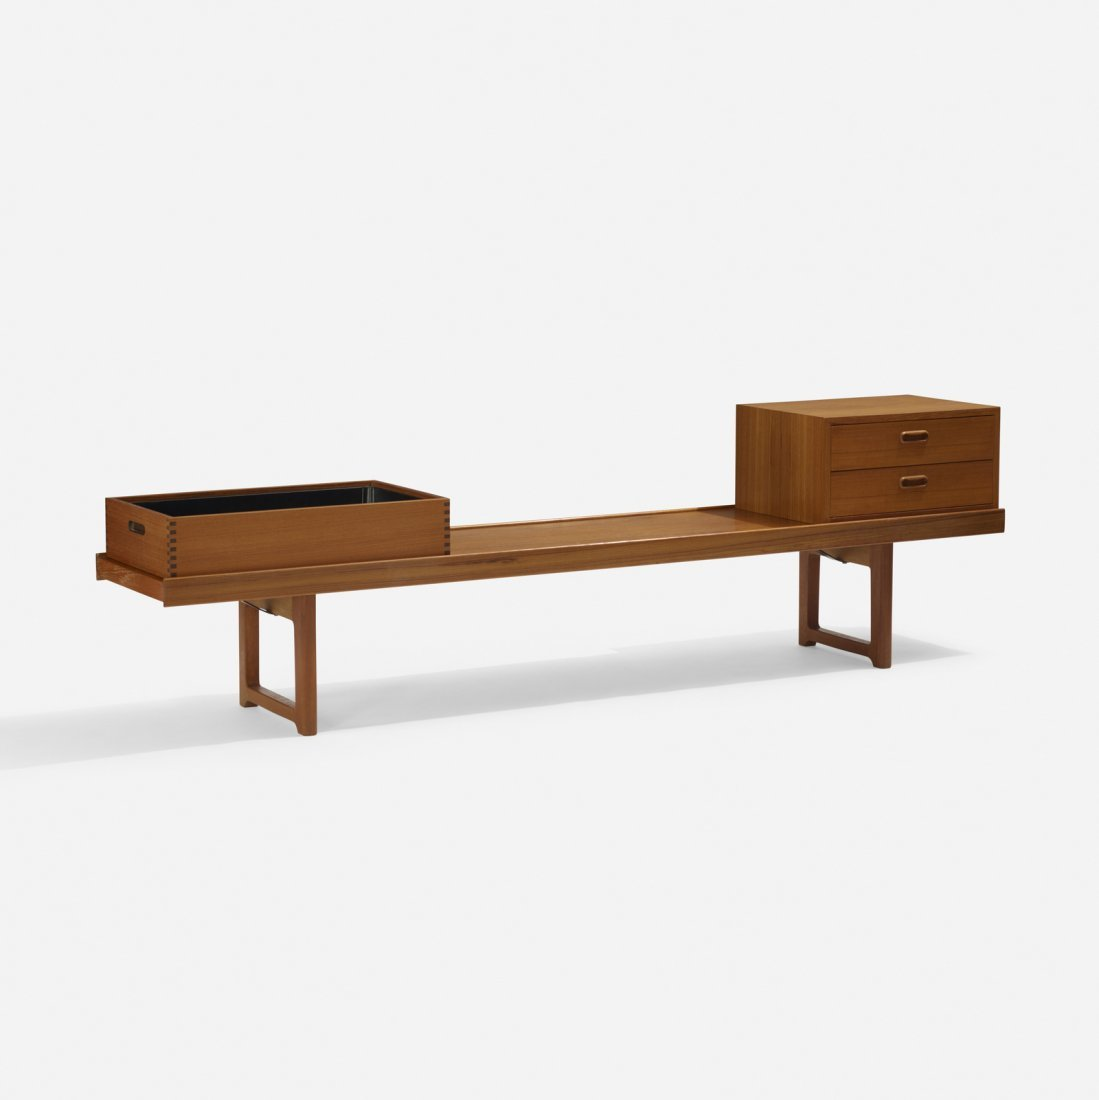 Torbjorn Afdal, Krobo bench and accessories